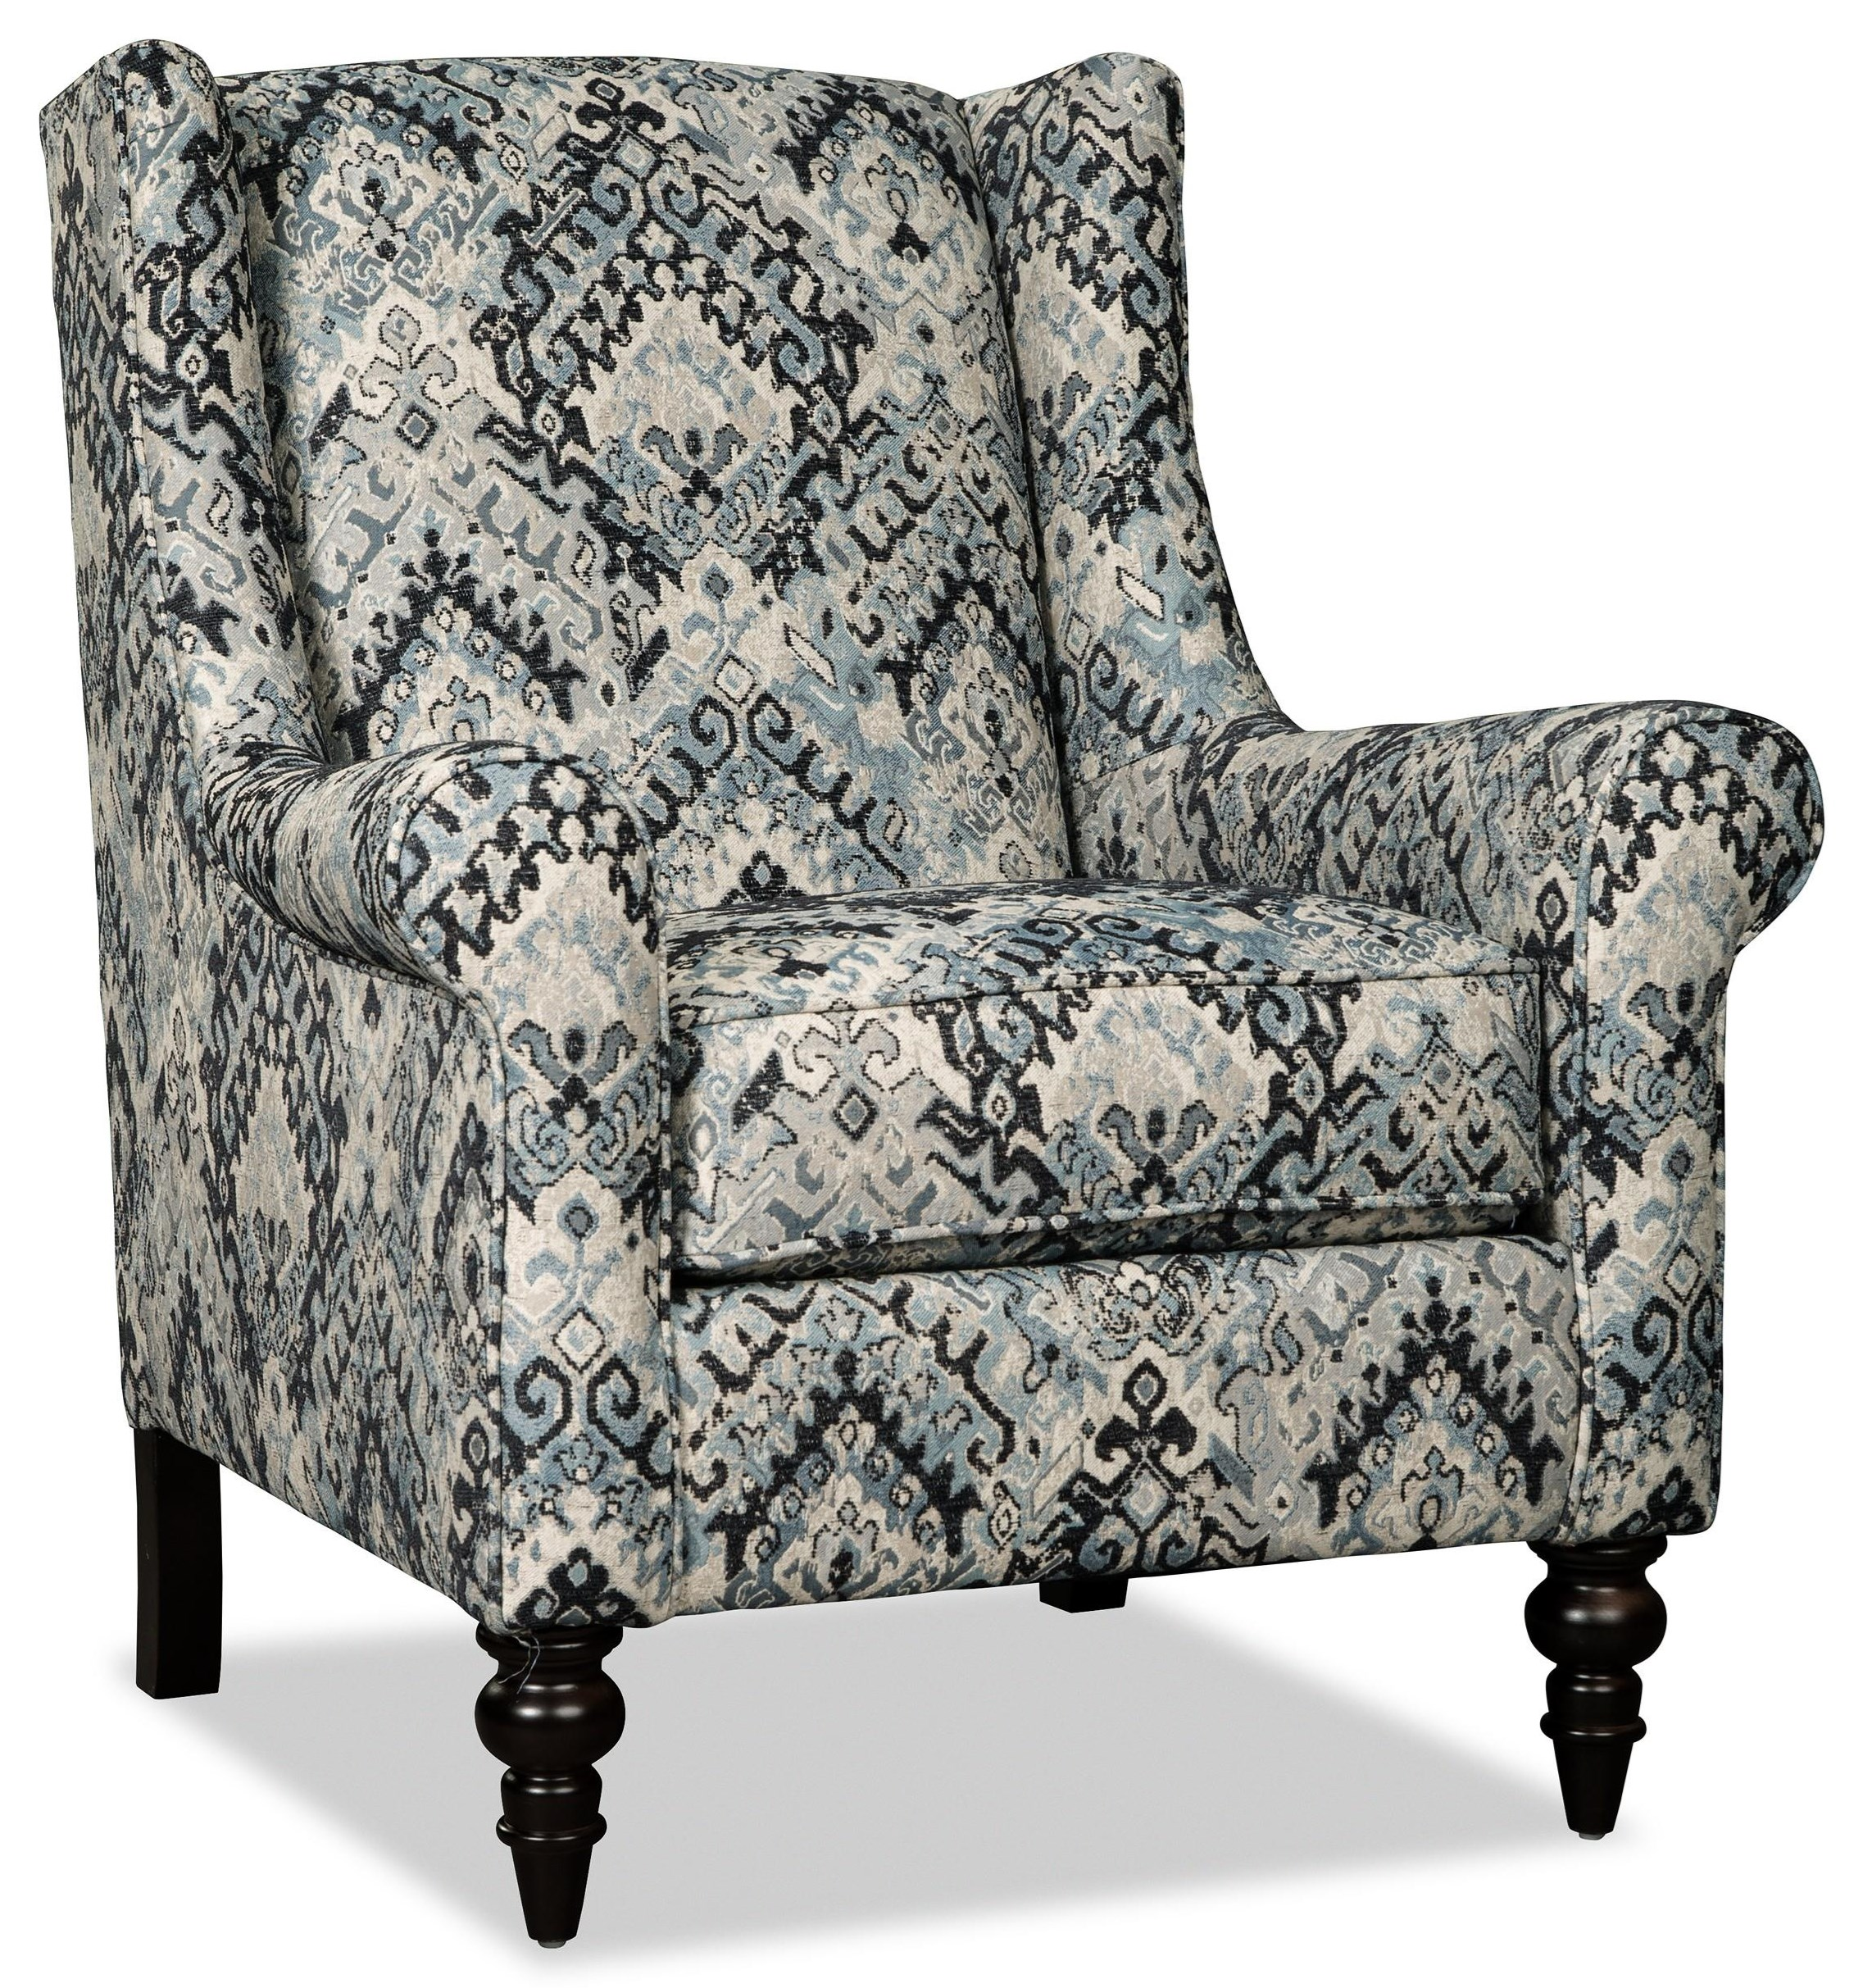 Accent Chairs Chair by Hickory Craft at Godby Home Furnishings